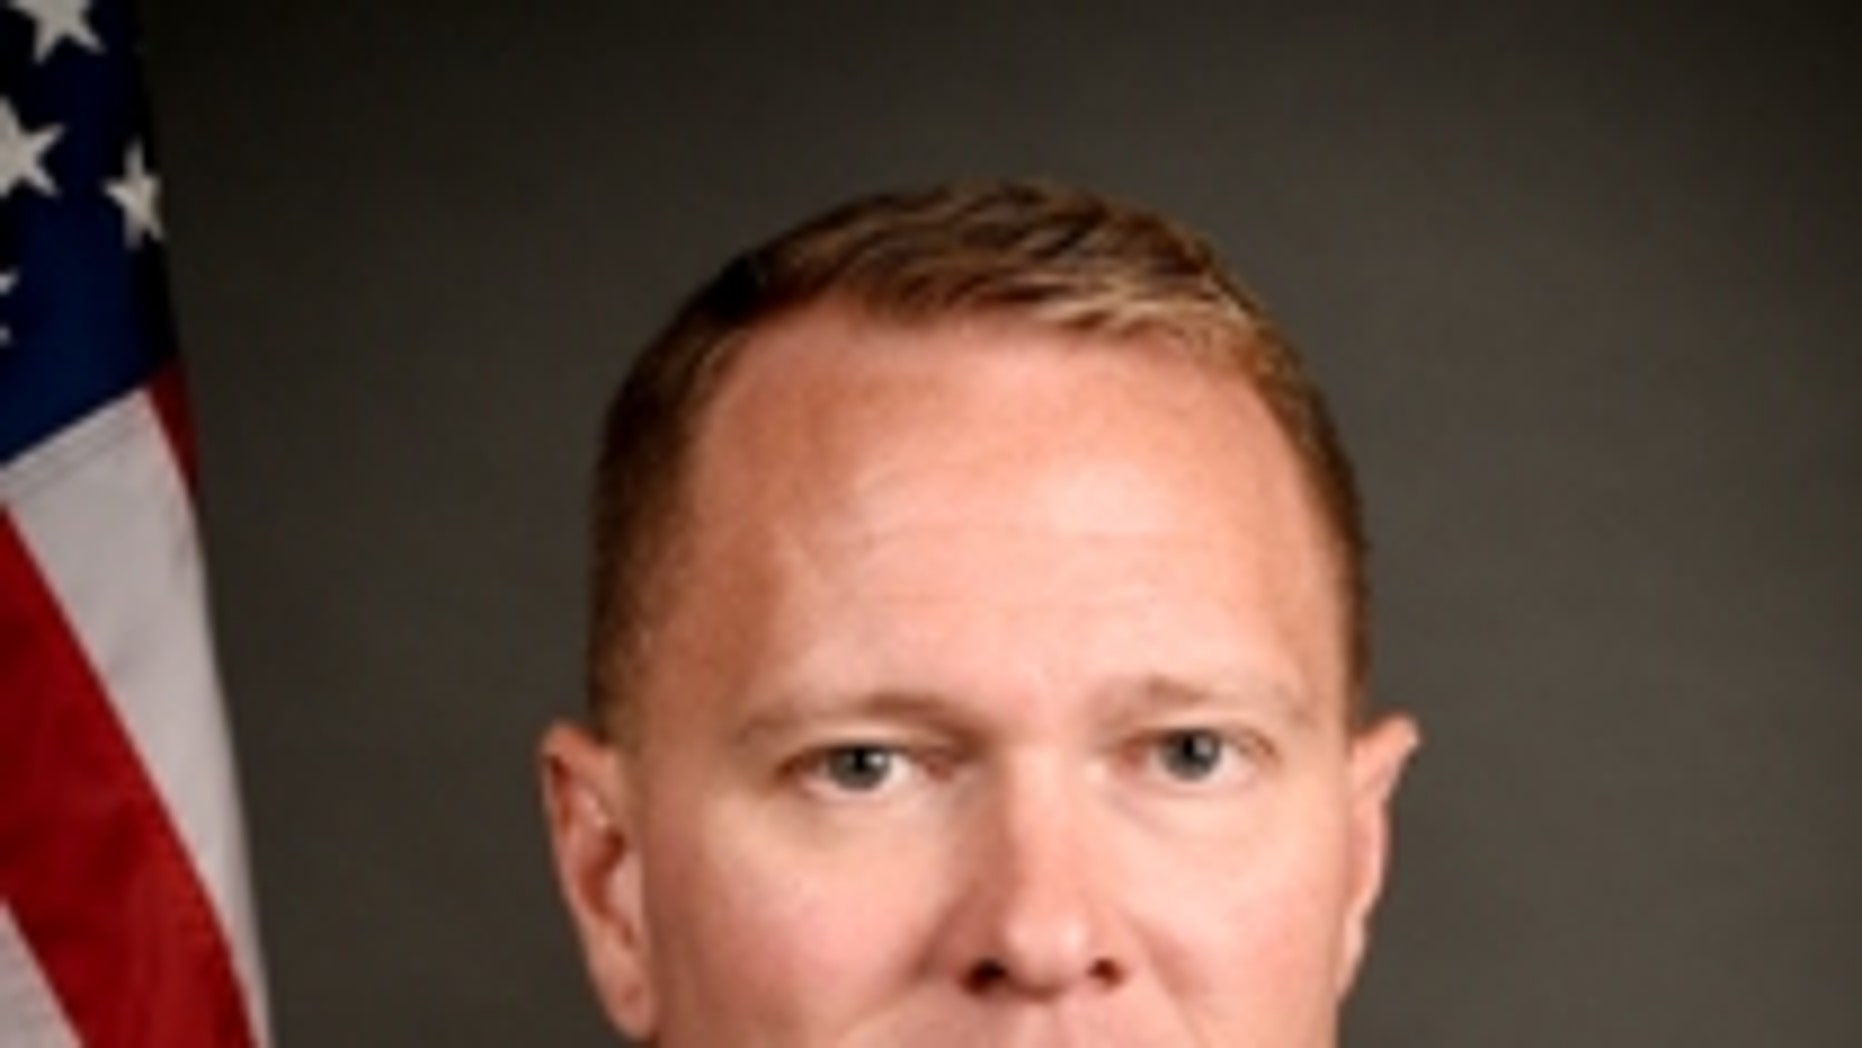 Greenville County Sheriff Will Lewis was suspended after he was charged with obstruction and misconduct in office. He is accused of sexually assaulting and harassing a female subordinate in 2017.